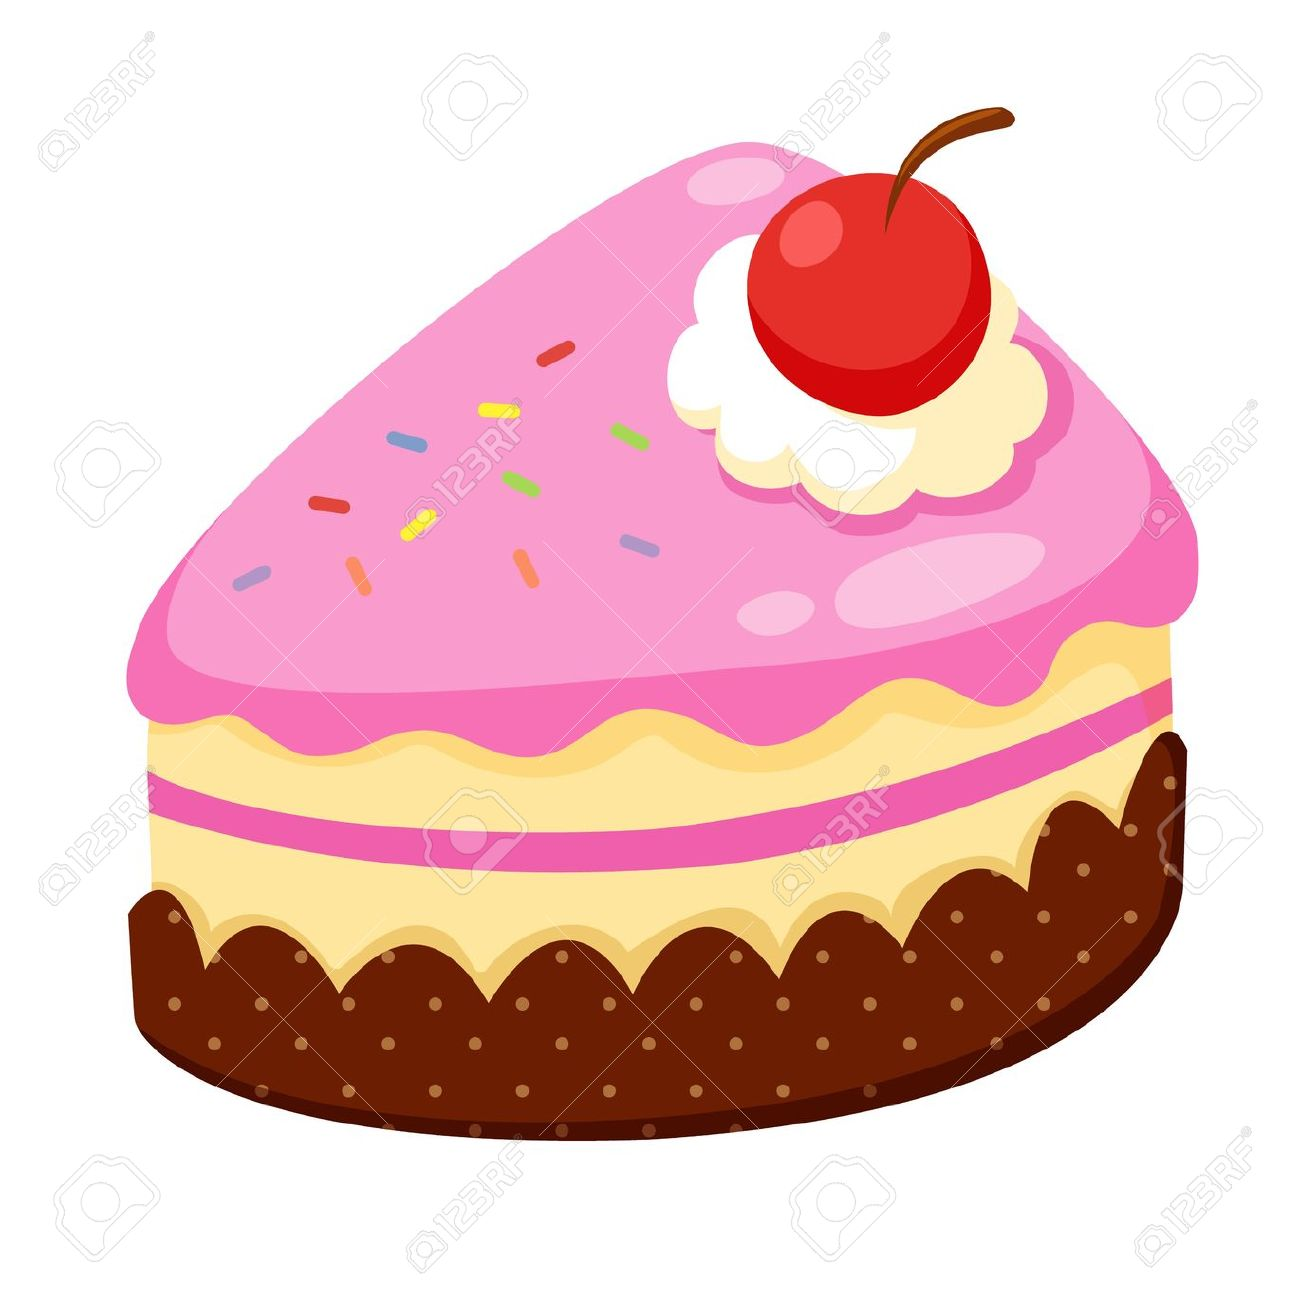 Cake Images In Cartoon : Strawberry cake clipart - Clipground